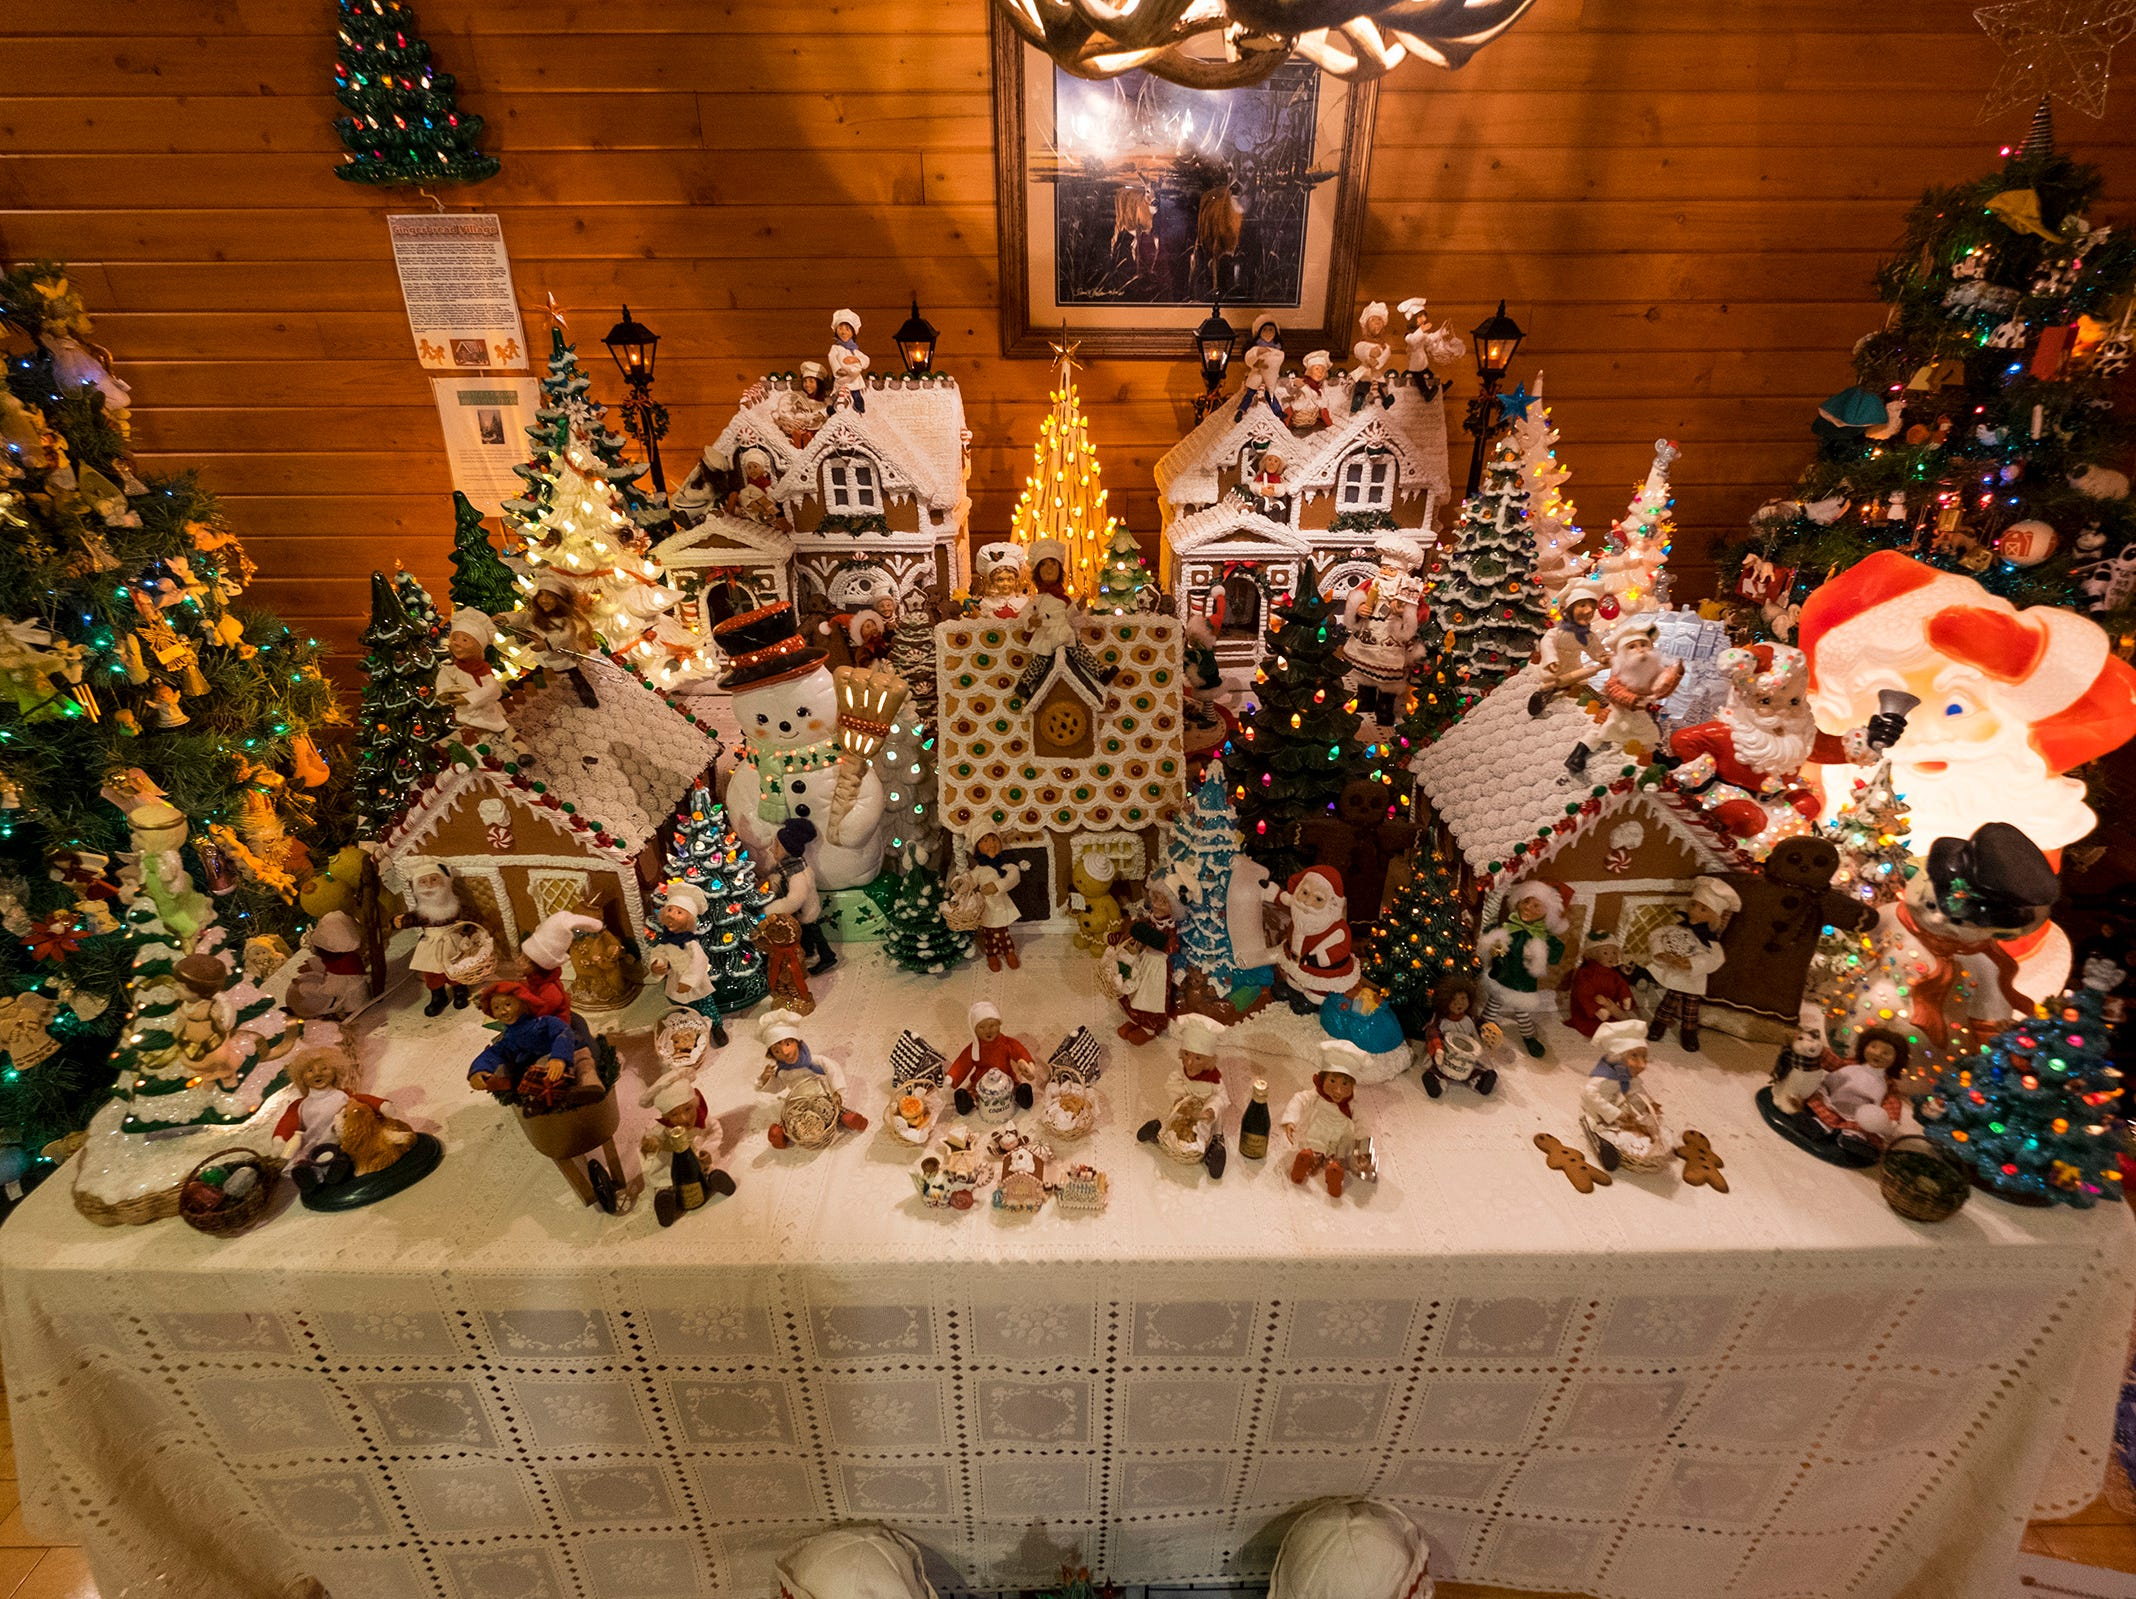 Gingerbread houses sit on a table near decorated Christmas trees for the annual History of the Christmas Tree Walk at Al and Diane Kodet's Algonac home.